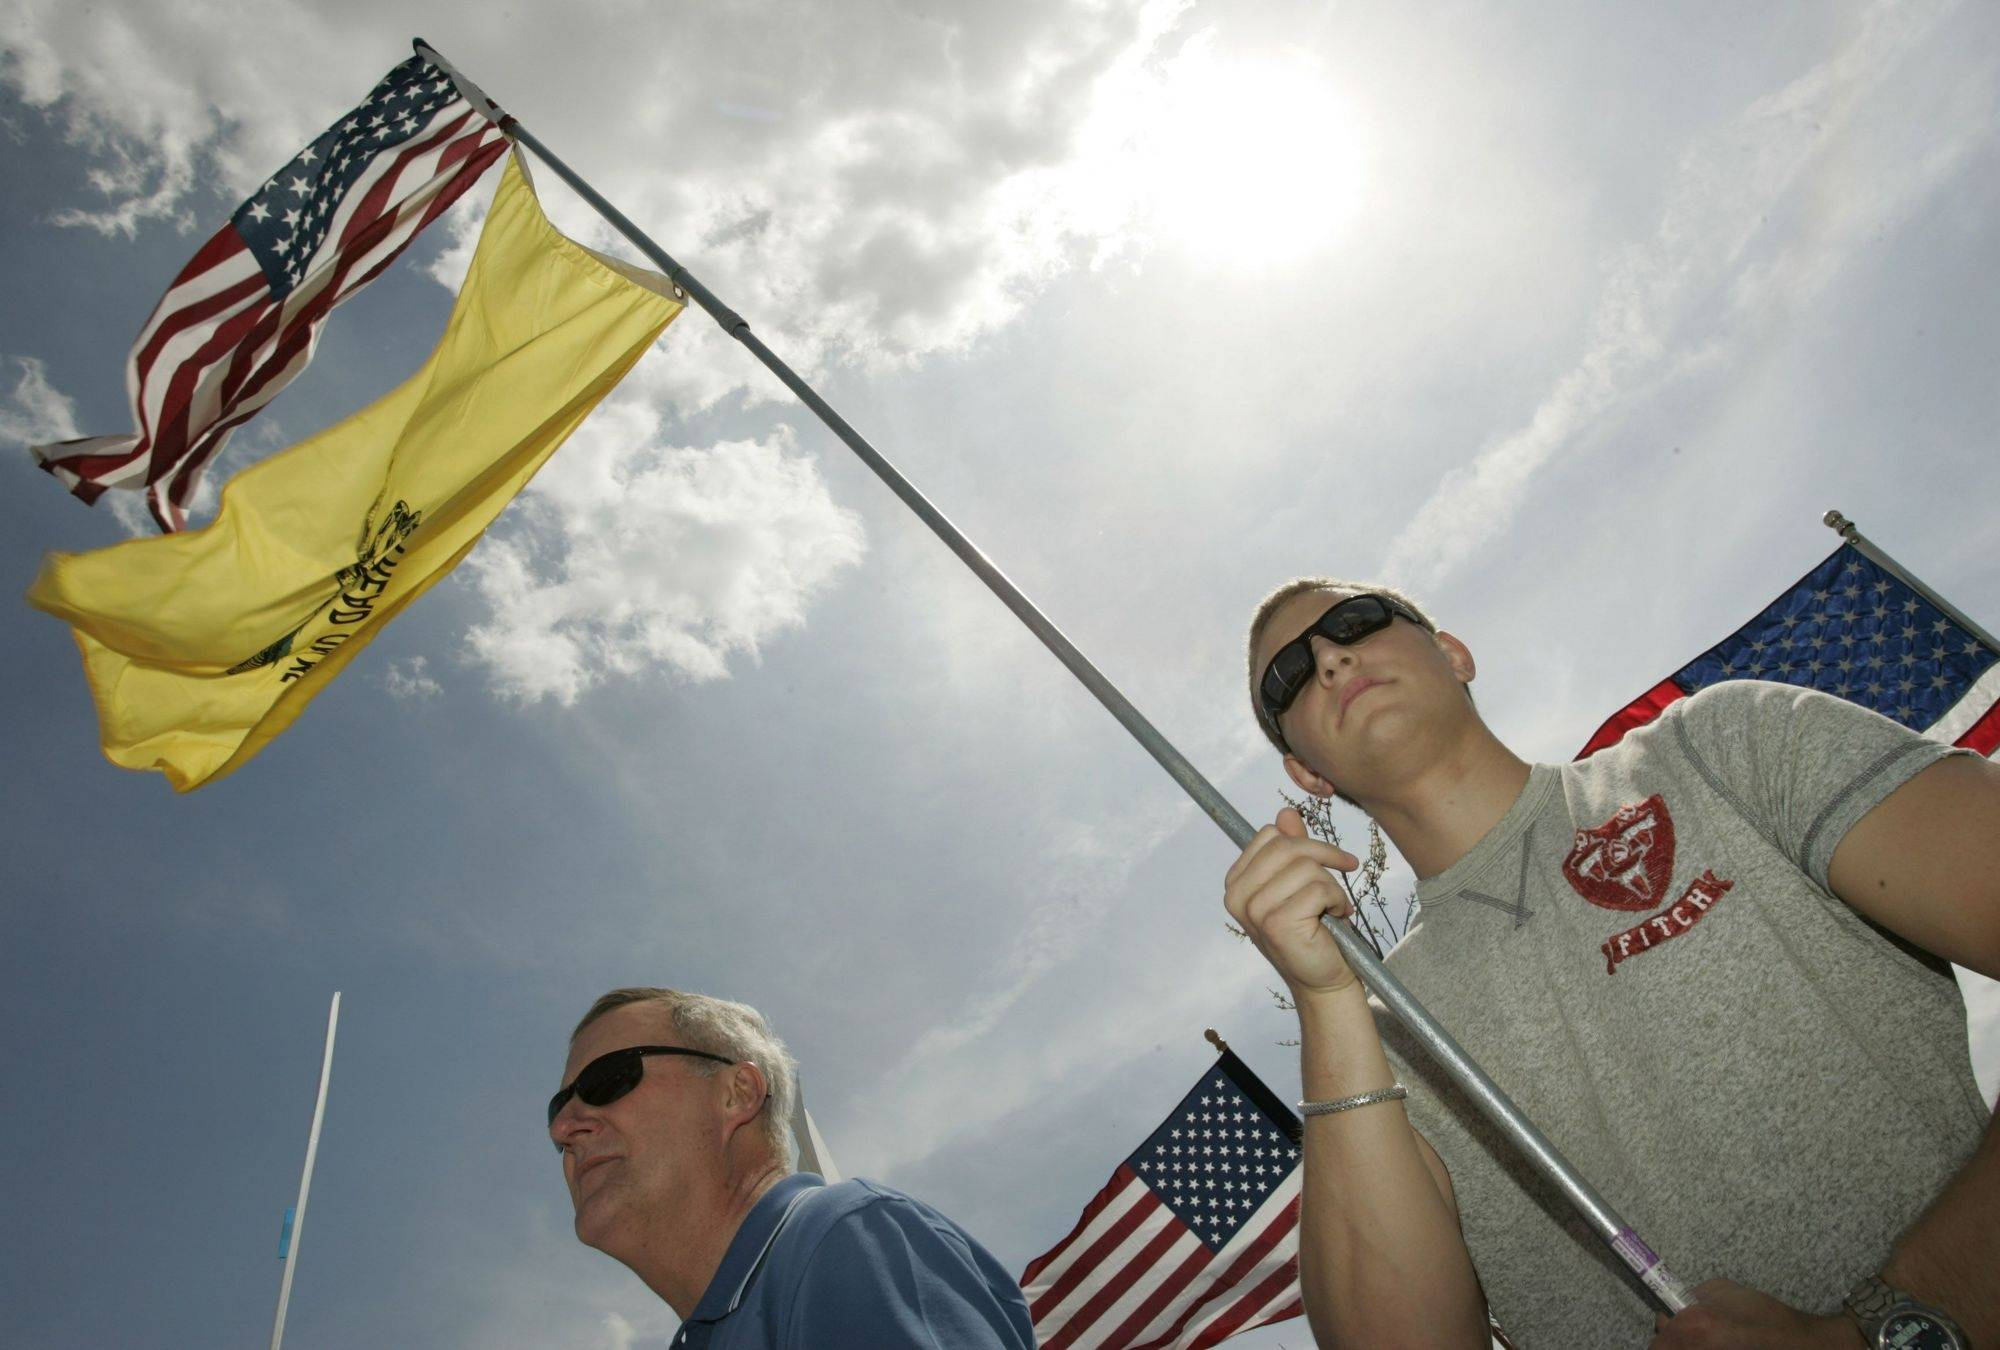 Alex Dubinski of Algonquin hoists flags high on Thursday during a tea party rally at Cornish Park in Algonquin.